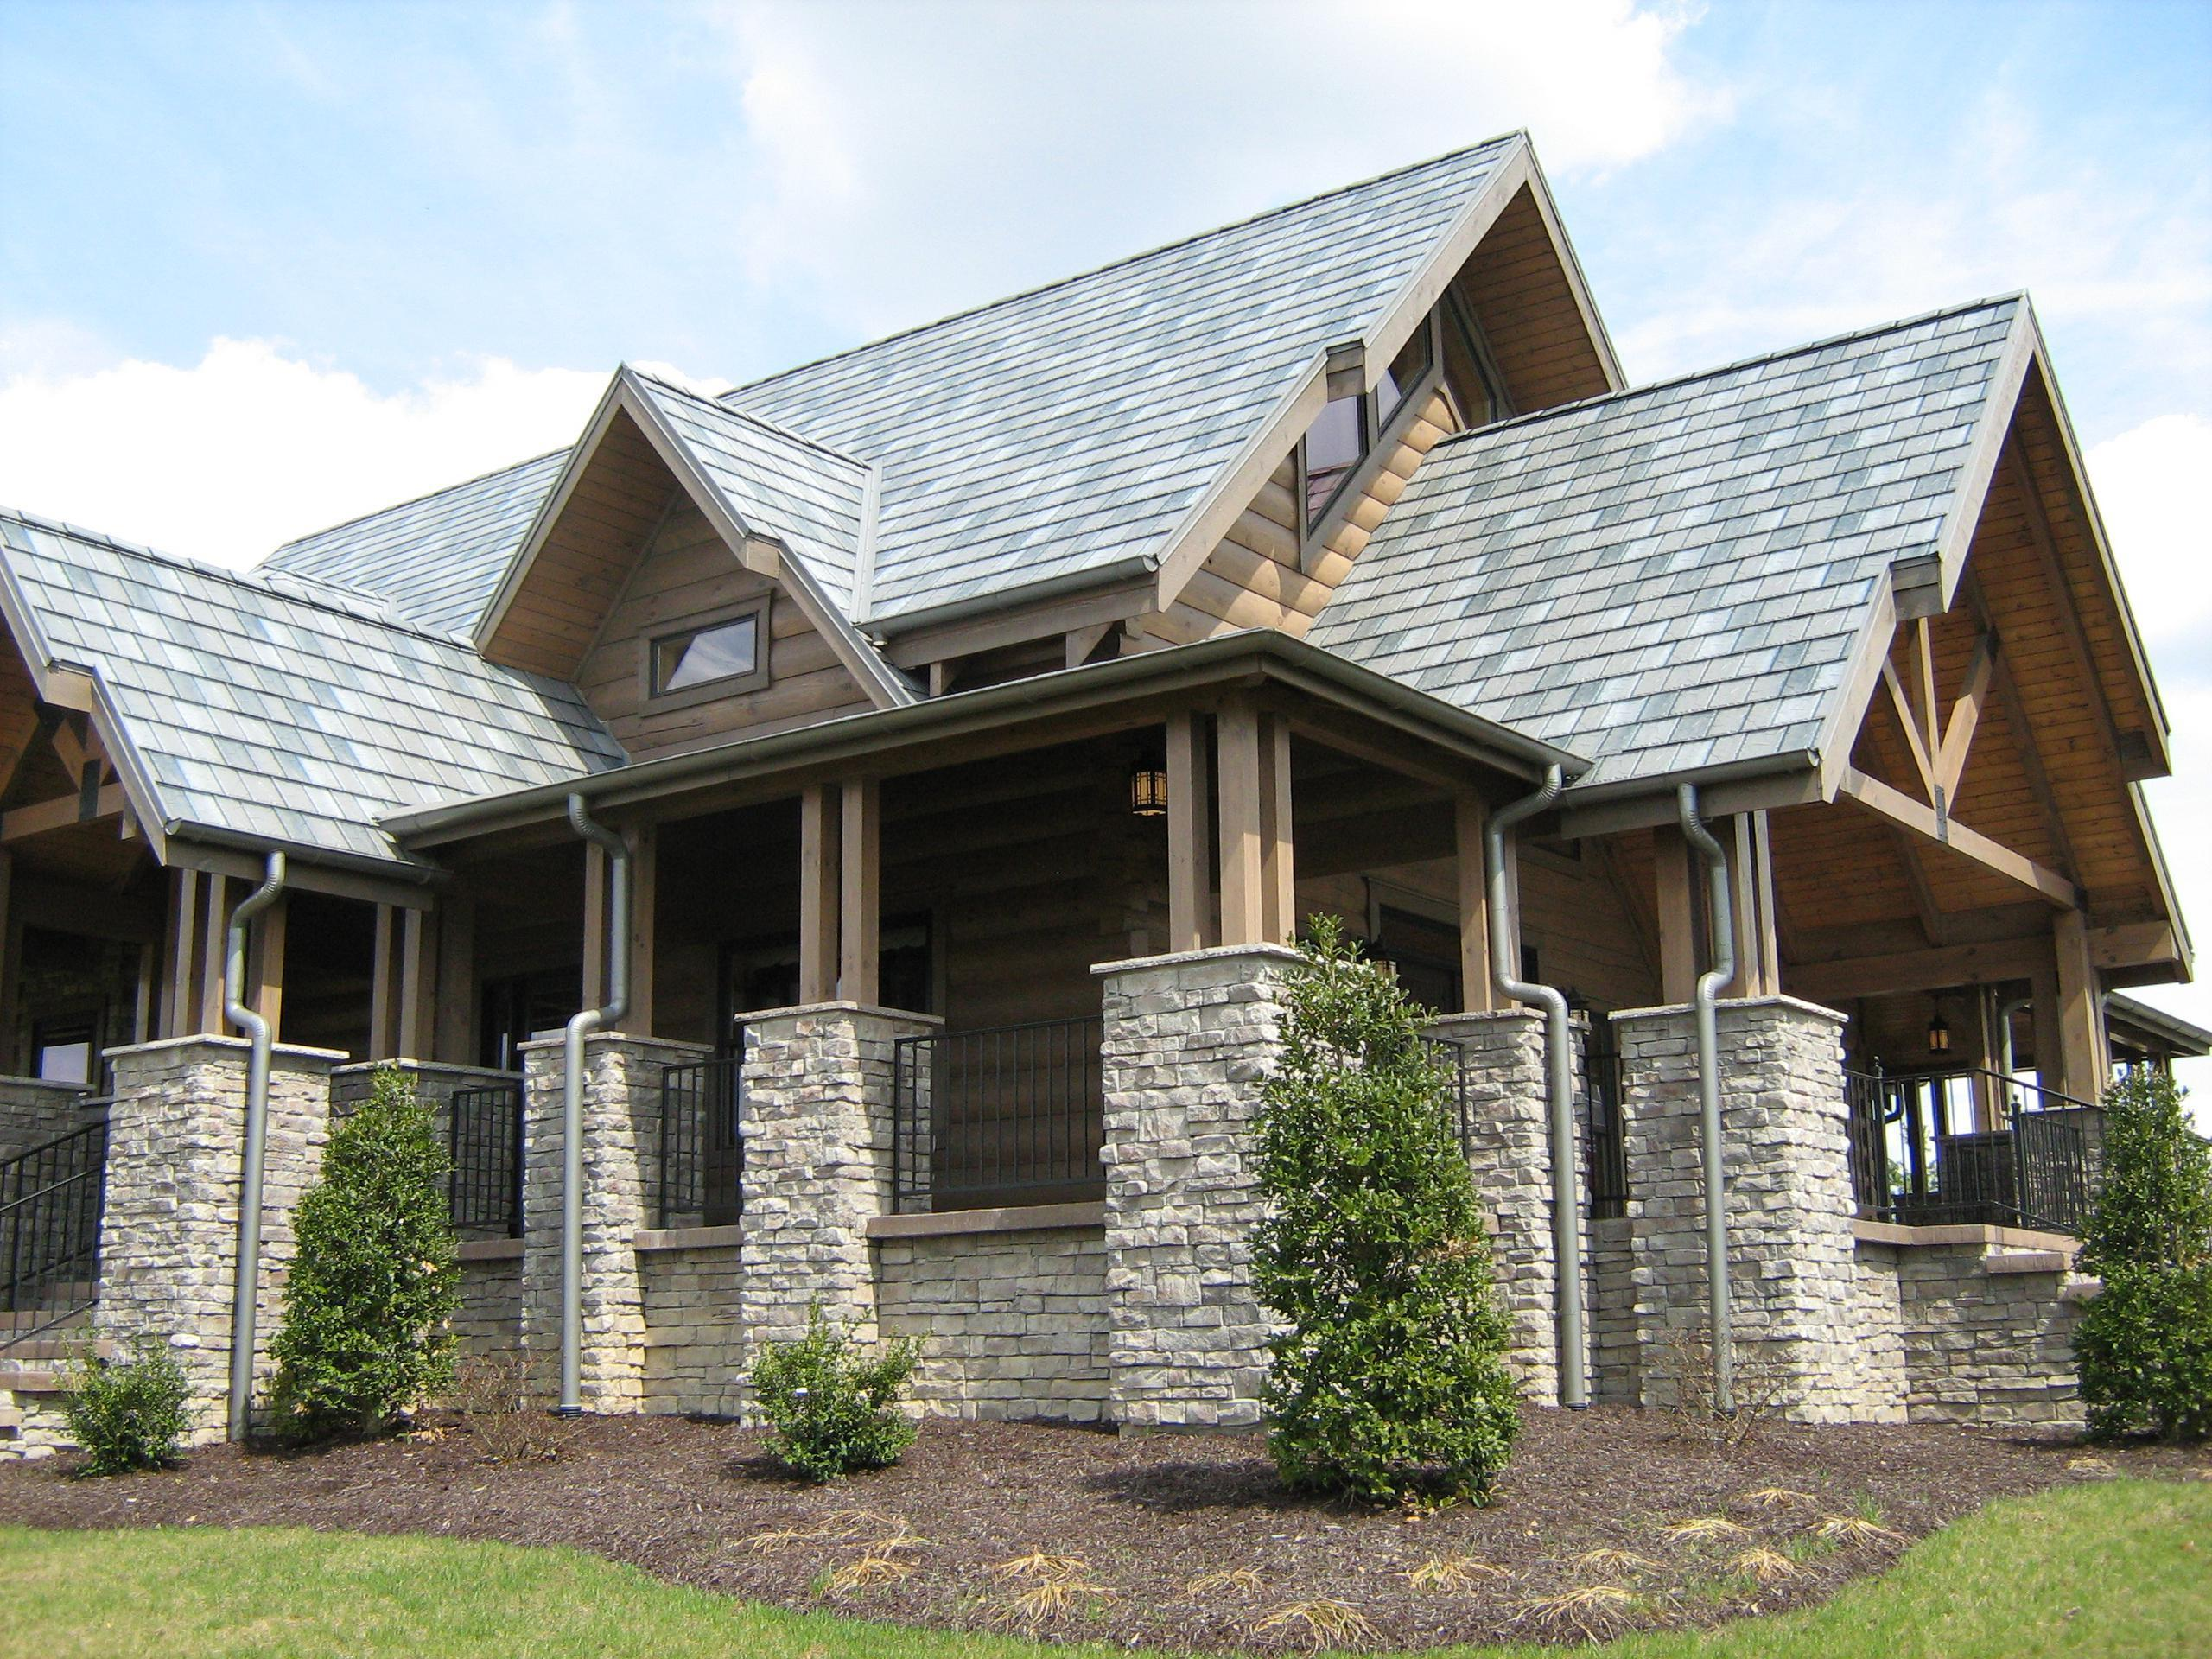 Log cabin homes frequently select EDCO's steel roofing because of the unique charm and character that it brings to the home. The Arrowline Slate T-Tone Blend Roofing coordinates with the natural colors and look of the cabin.